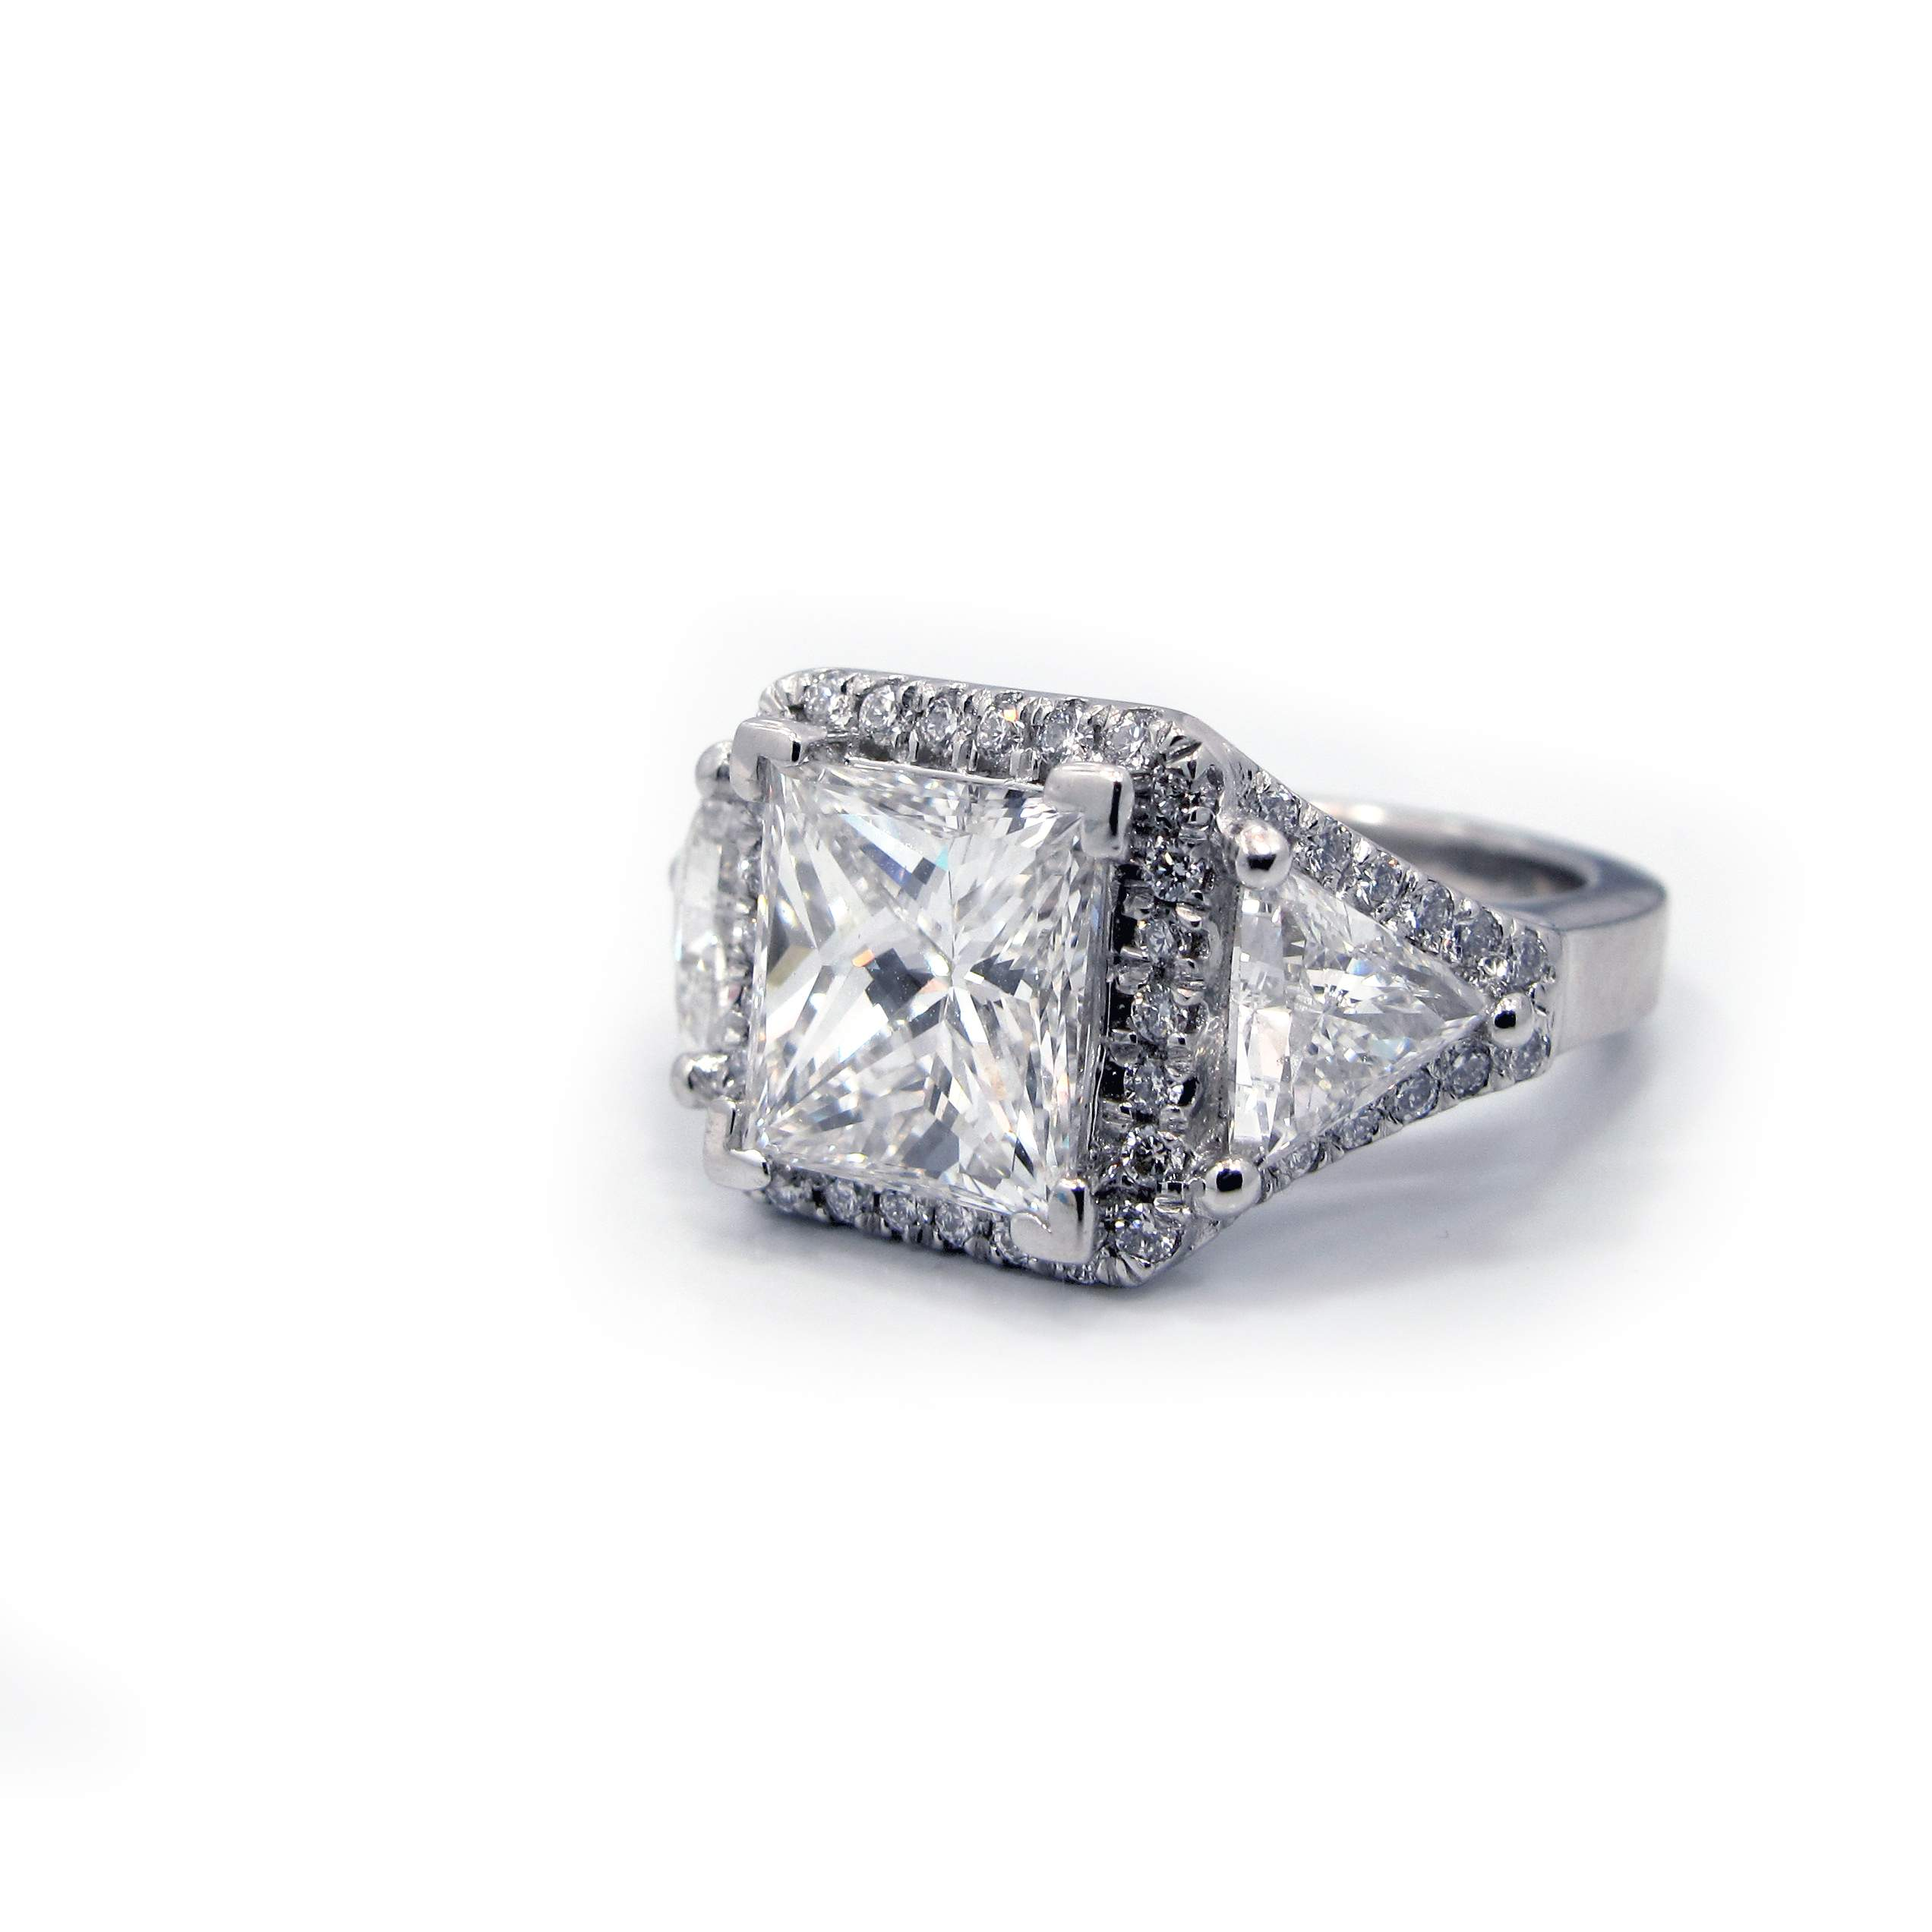 ring rings marquise cut engagement dacarli classic c with trillions trillion diamond